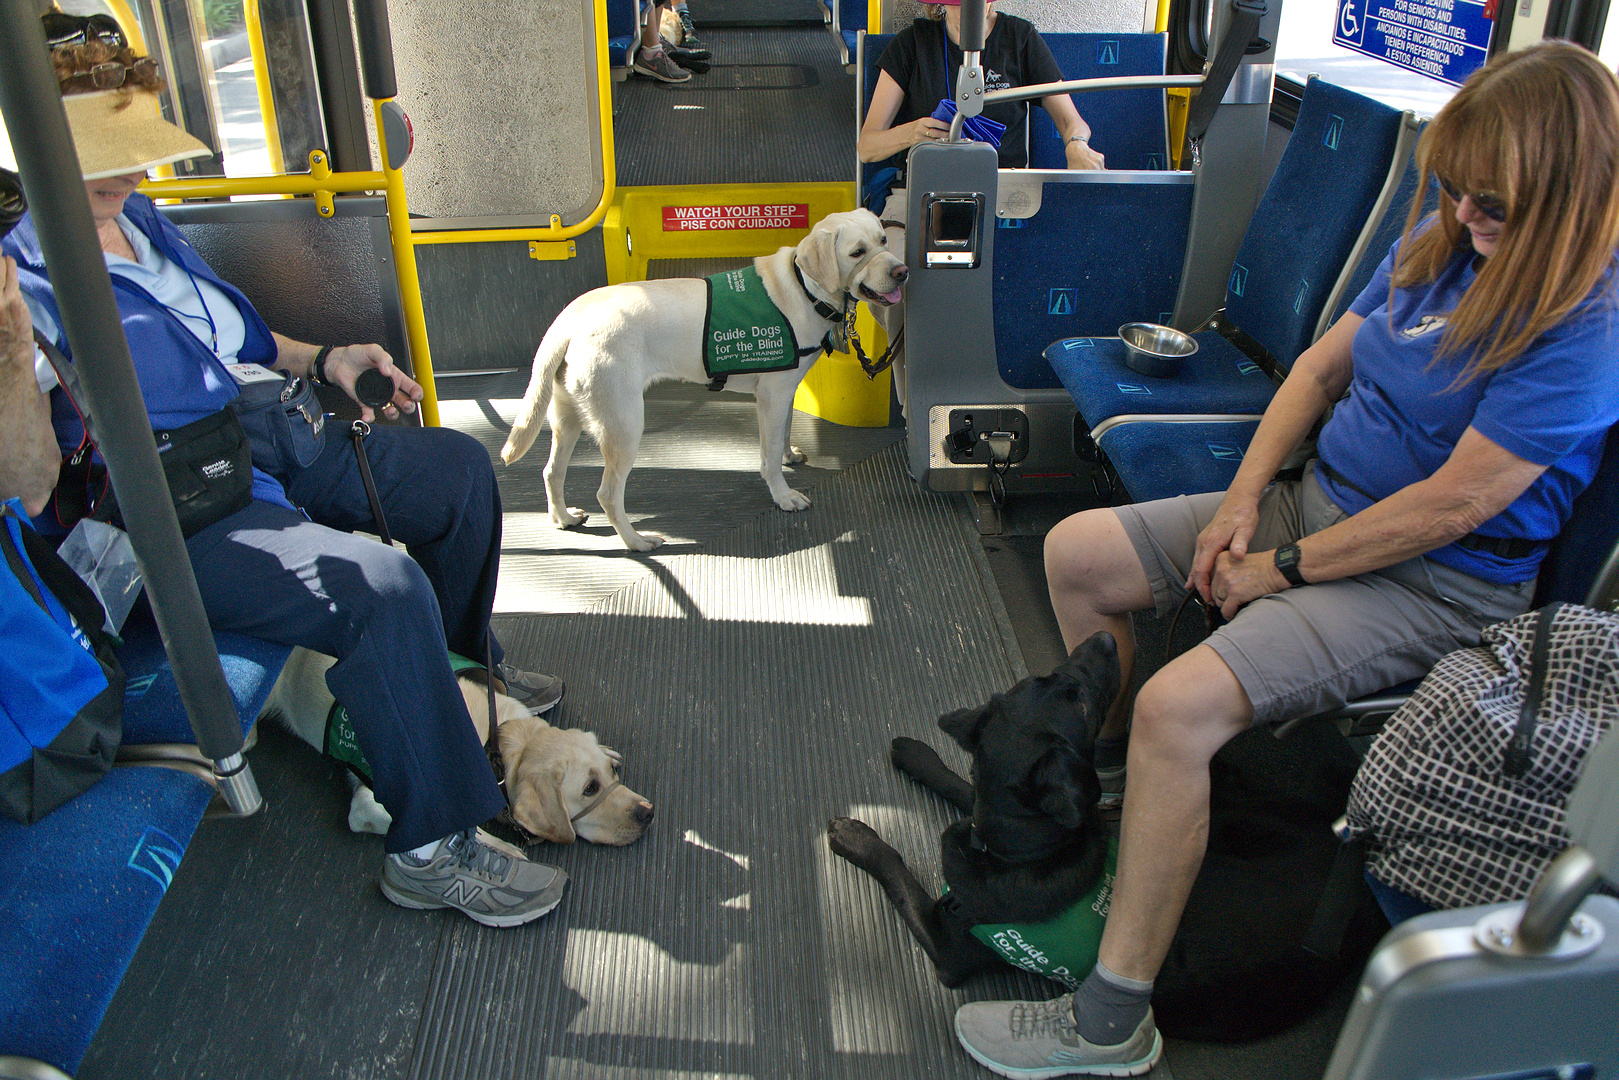 Dogs behaving well on a bus